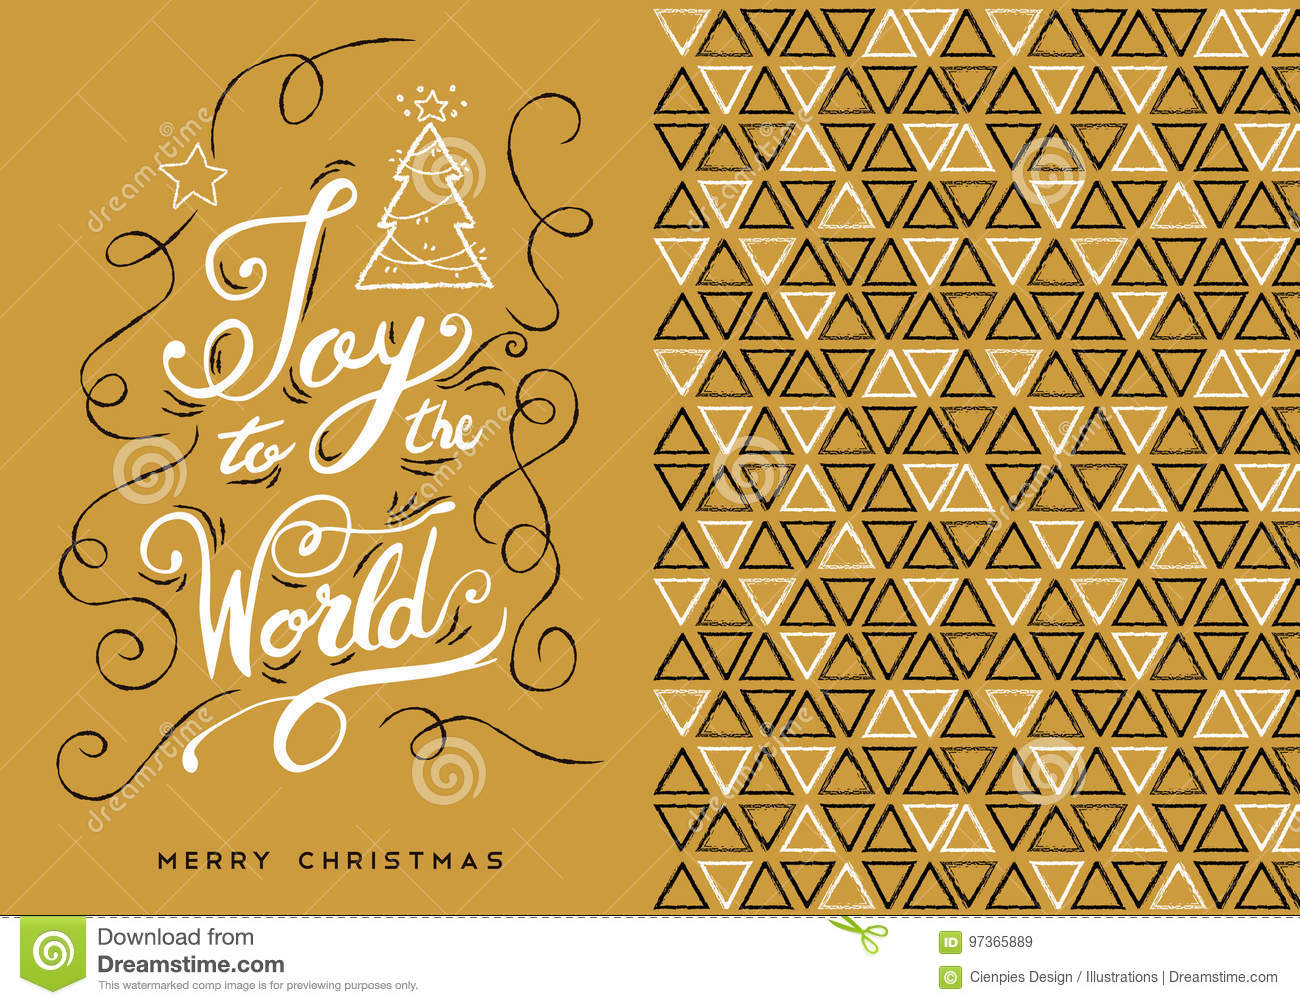 Merry Christmas Hand Drawn Gold Greeting Card Stock Vector ...